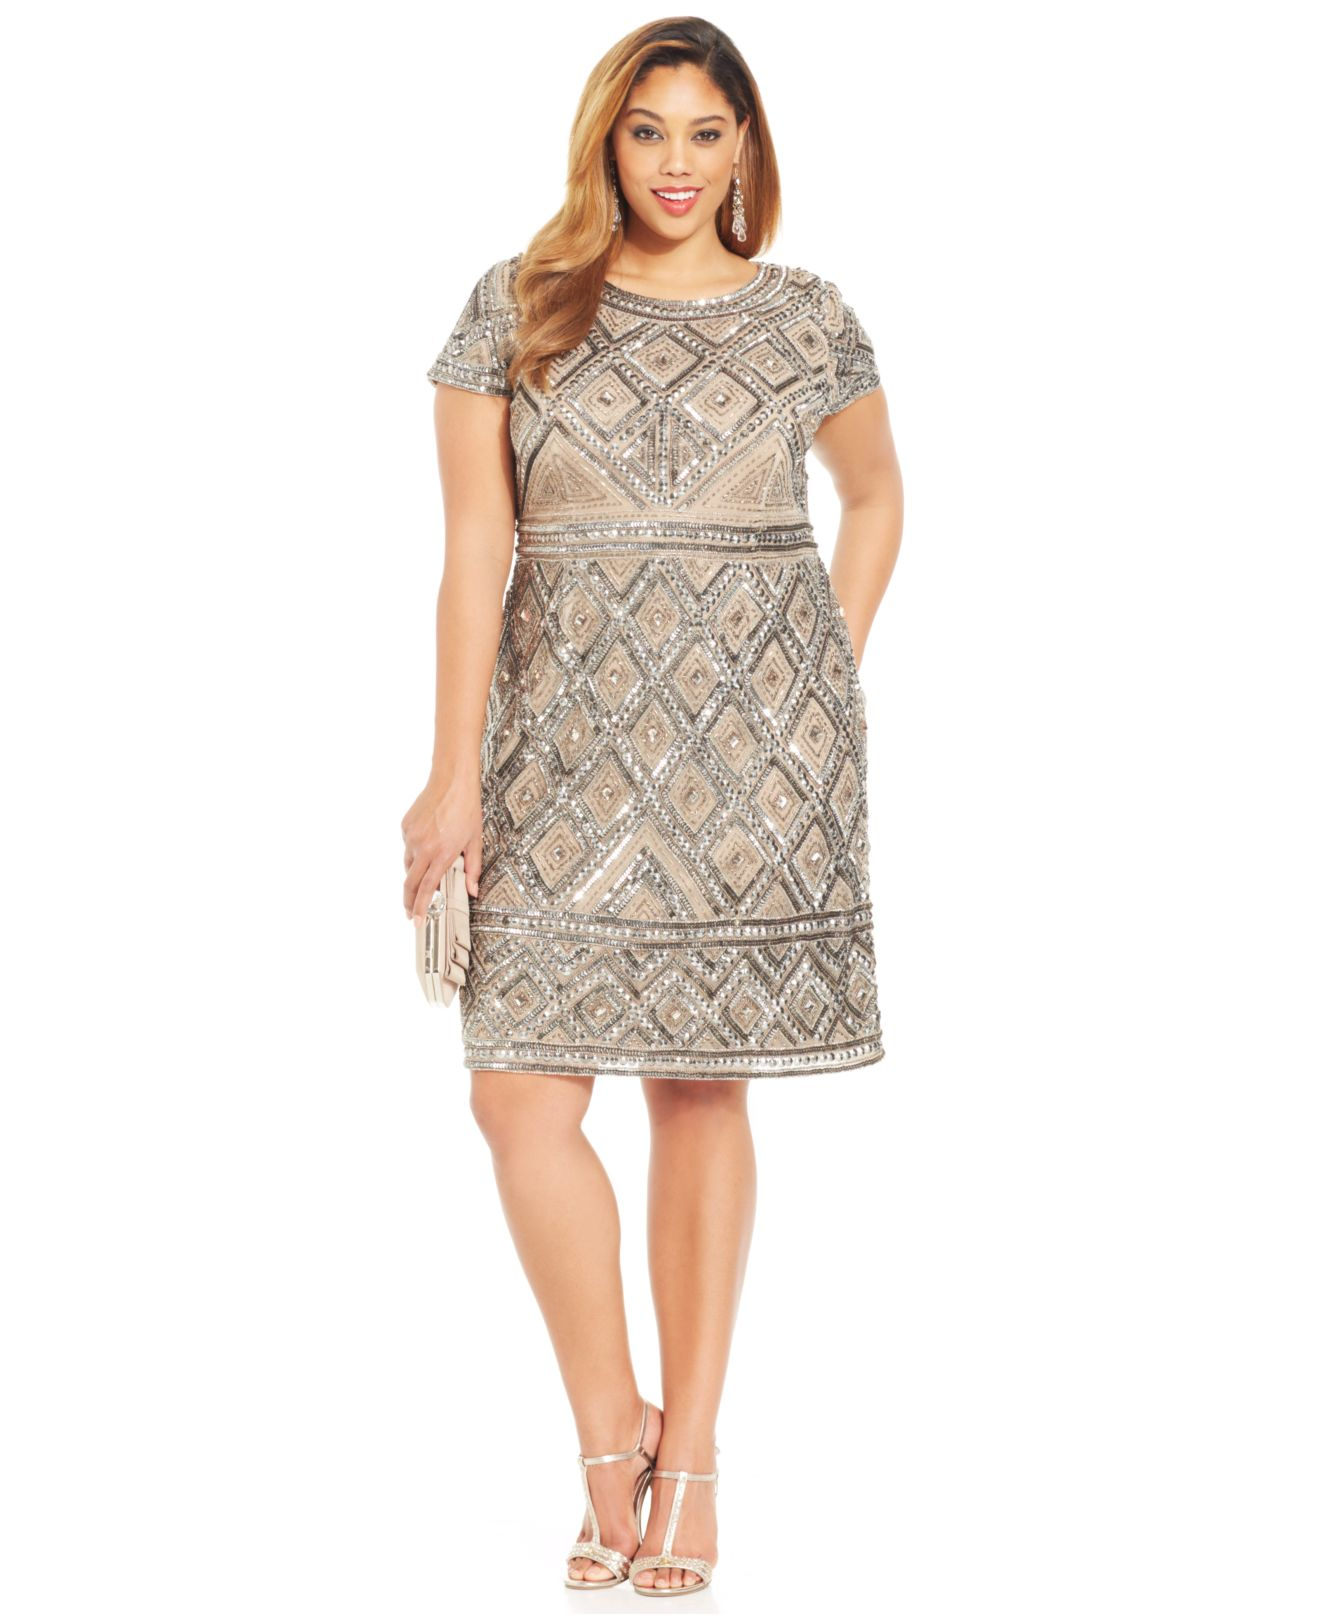 Lyst - Adrianna Papell Plus Size Short-Sleeve Beaded ...